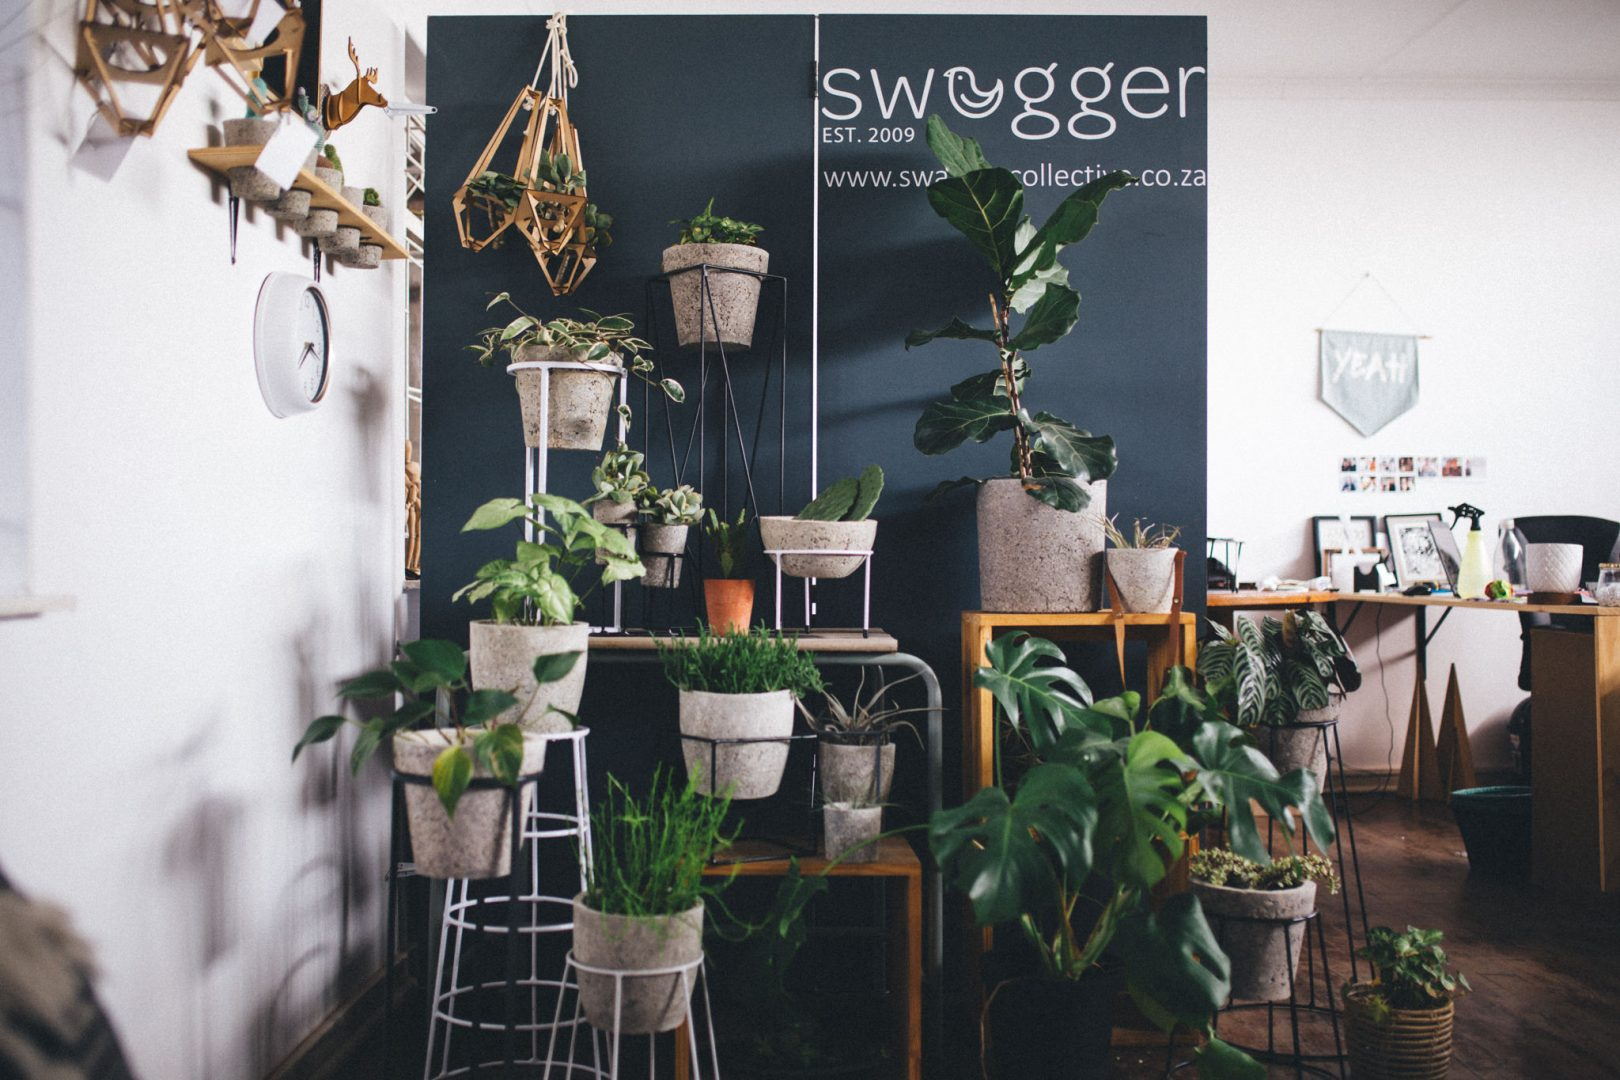 Tharien Strydom Swagger Collective